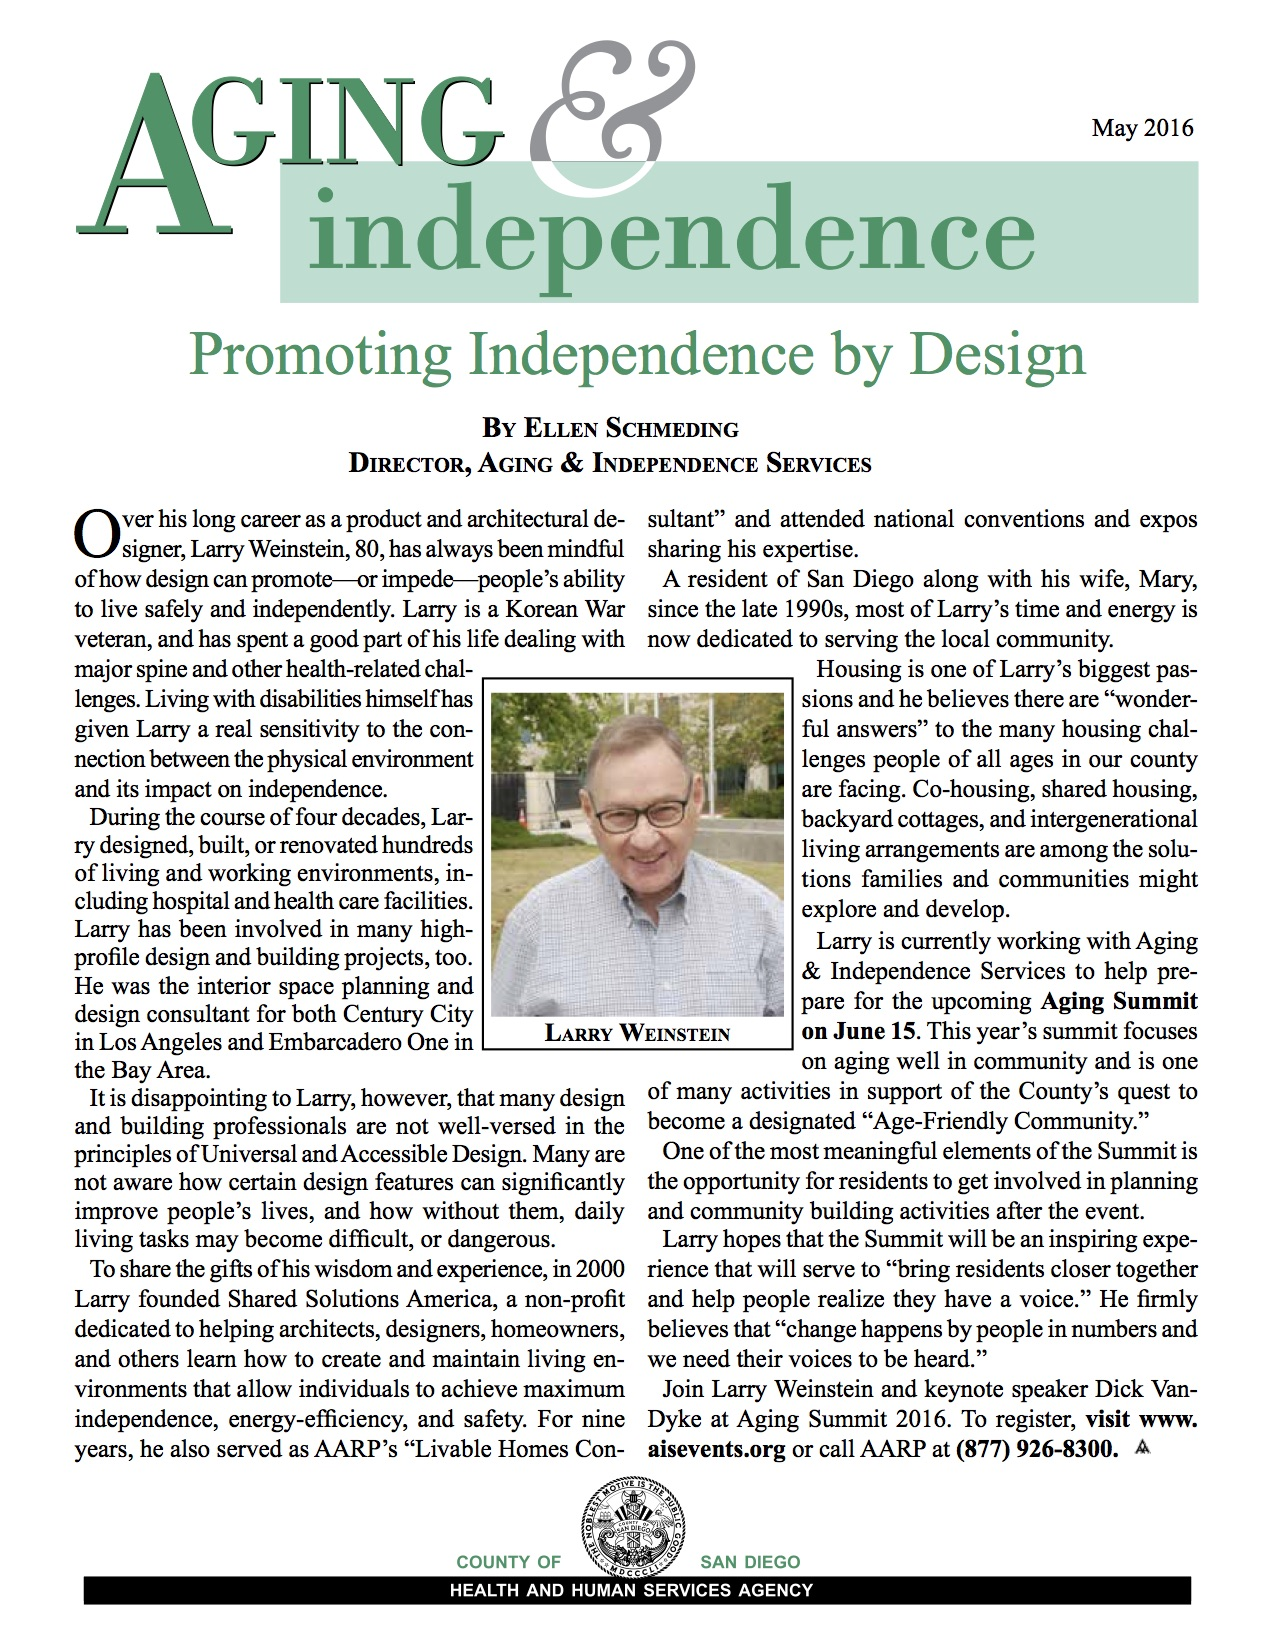 Prooting Independence by Design